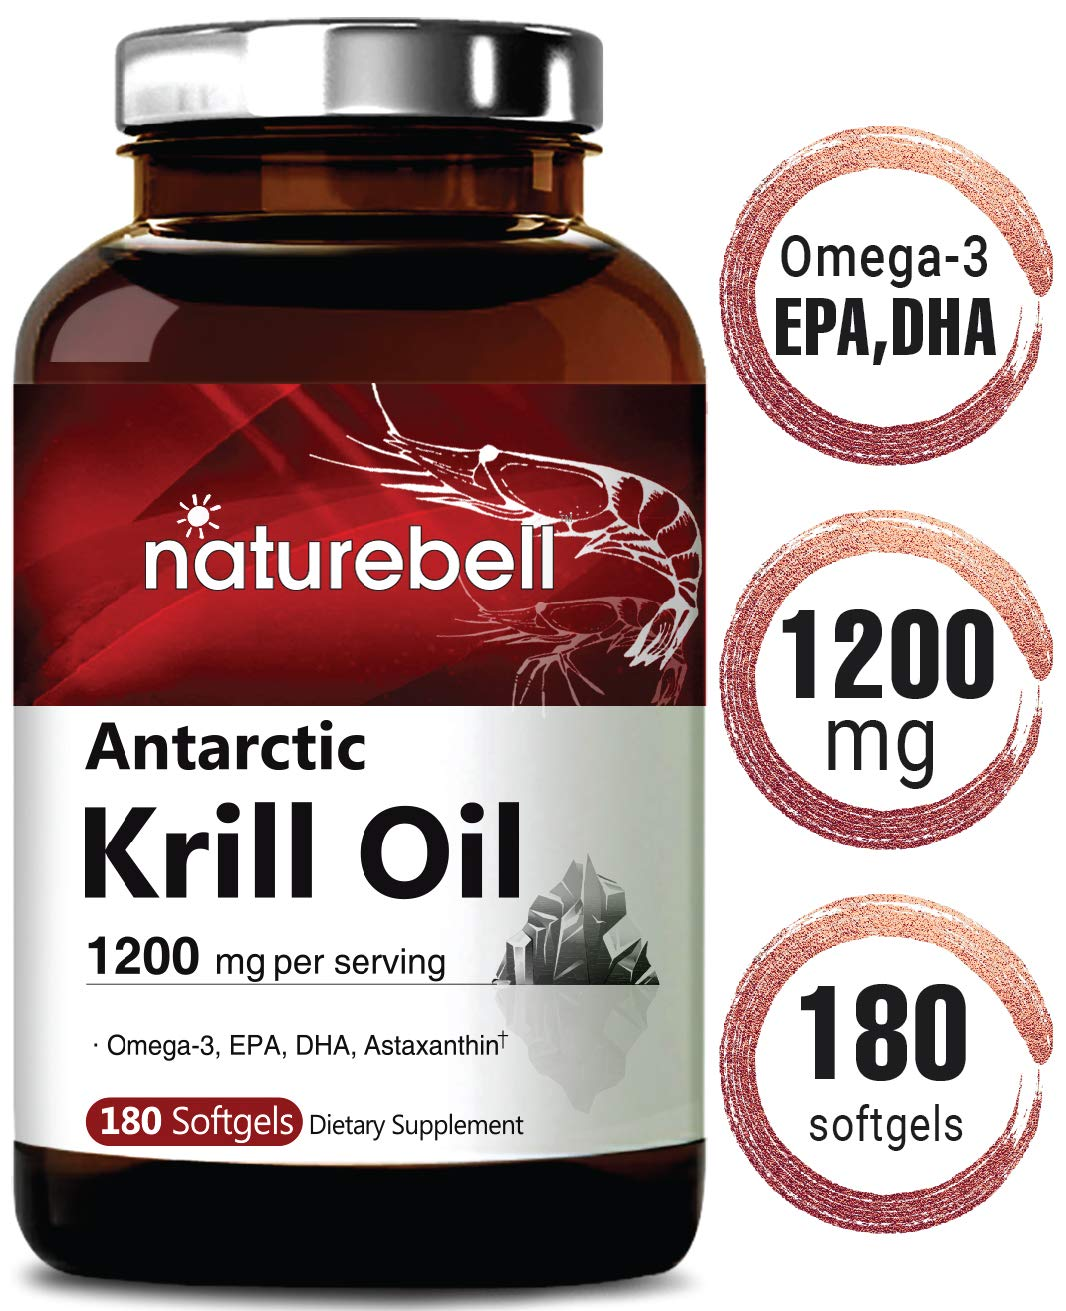 Maximum Strength Antarctic Krill Oil Supplement, 1200mg Per Serving, 180 Softgels, Source of Natural Omega 3, EPA, DHA and Astaxanthin, No GMOs and Made in USA by NatureBell